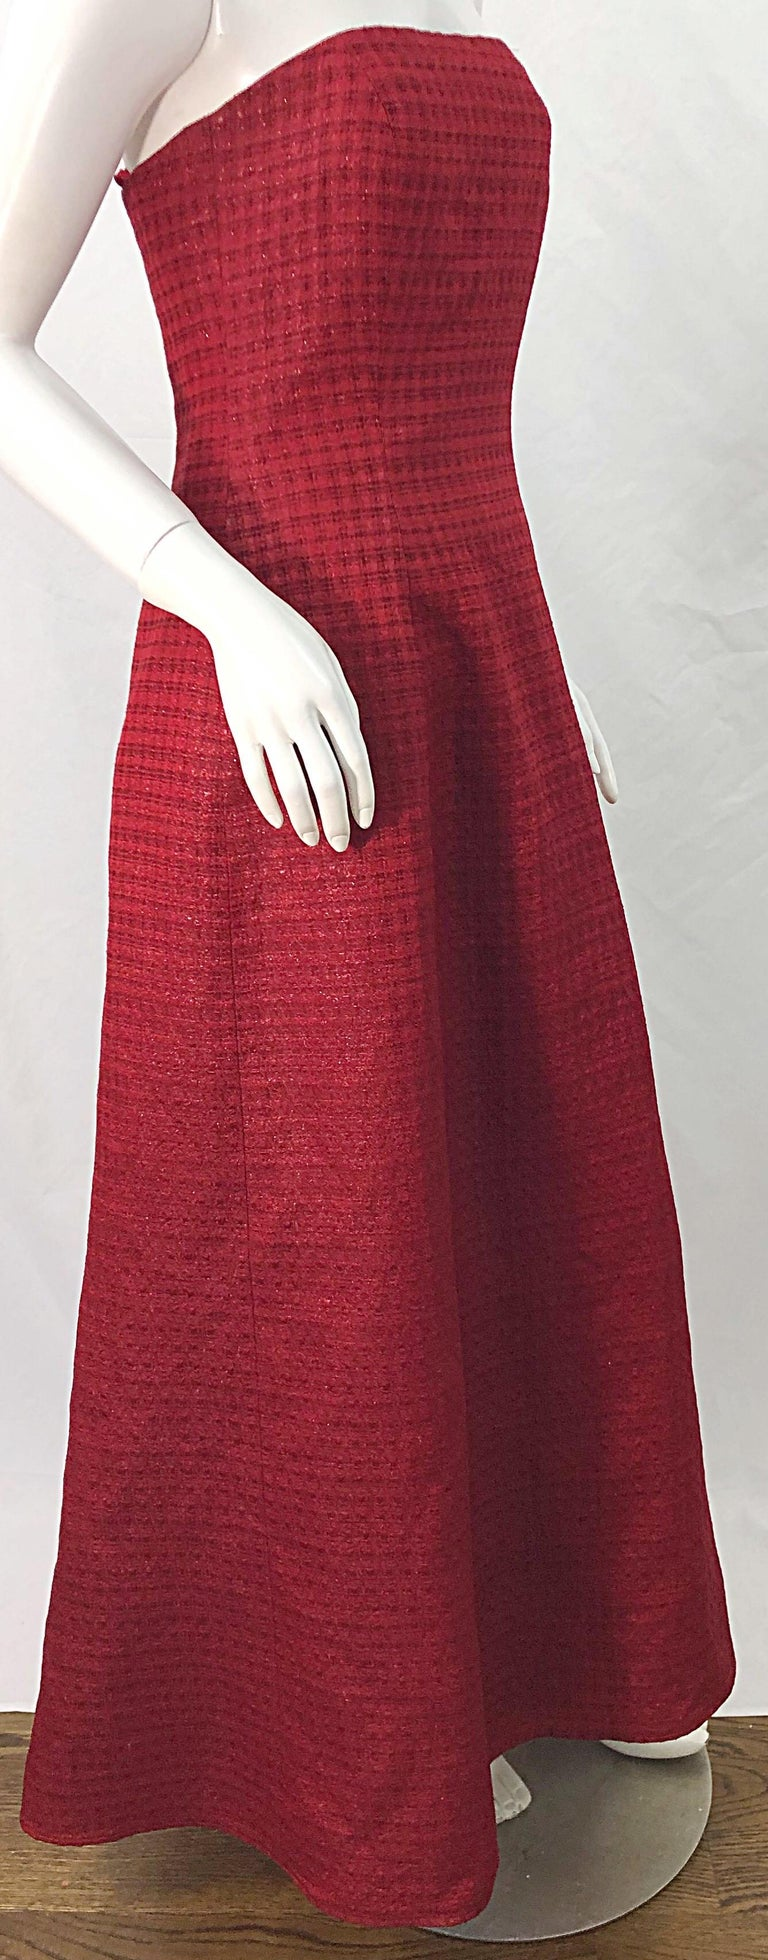 1990s Louis Feraud Cranberry Red Strapless Vintage 90s Silk + Wool Gown Dress For Sale 5